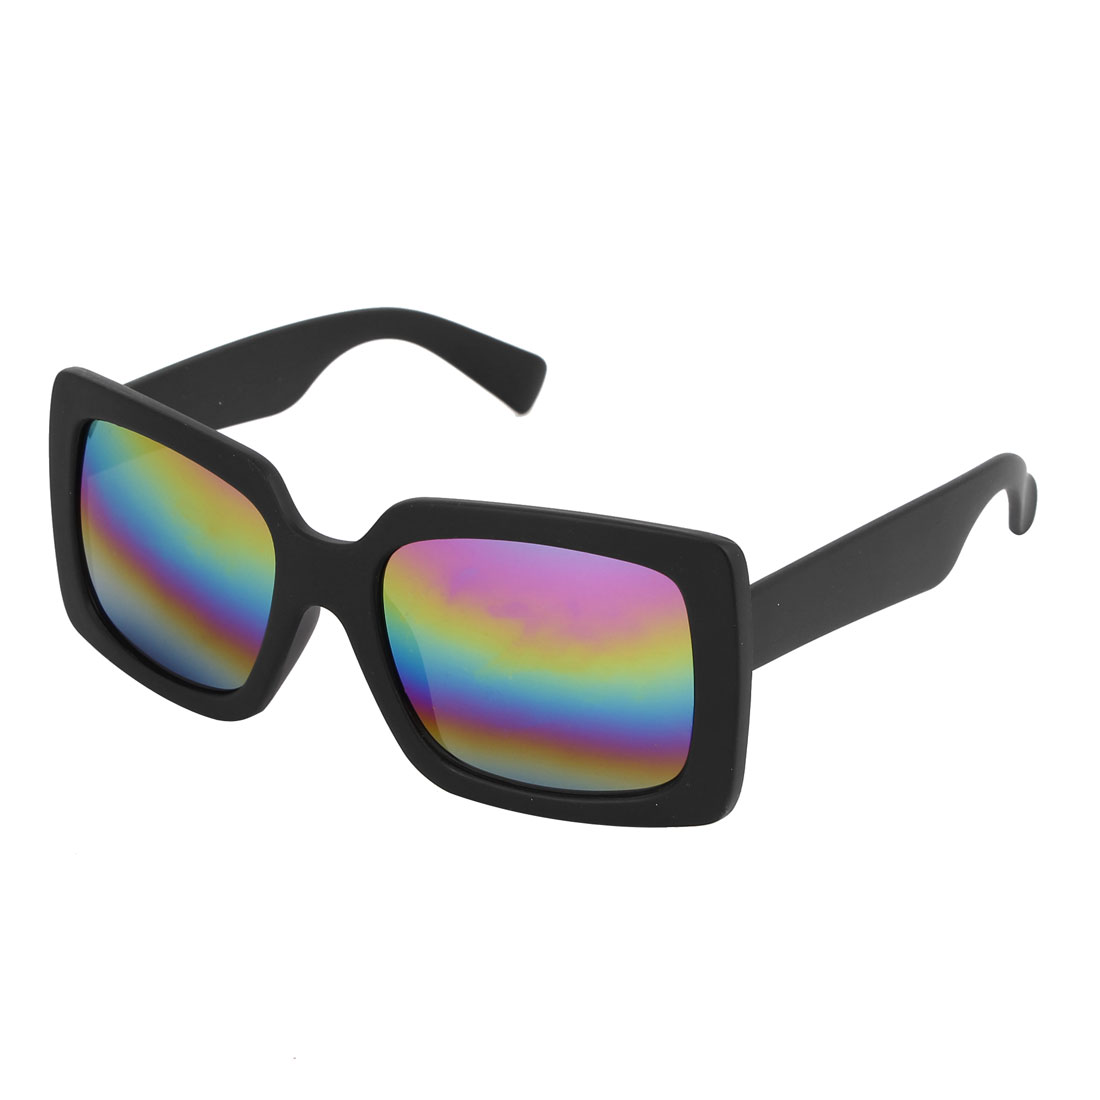 Single Bridge Wide Temple Black Square Shape Full Rim Frame Colorful Mirror Lens Beach Traveling Shopping Leisure Eyeglasses Sun Glasses